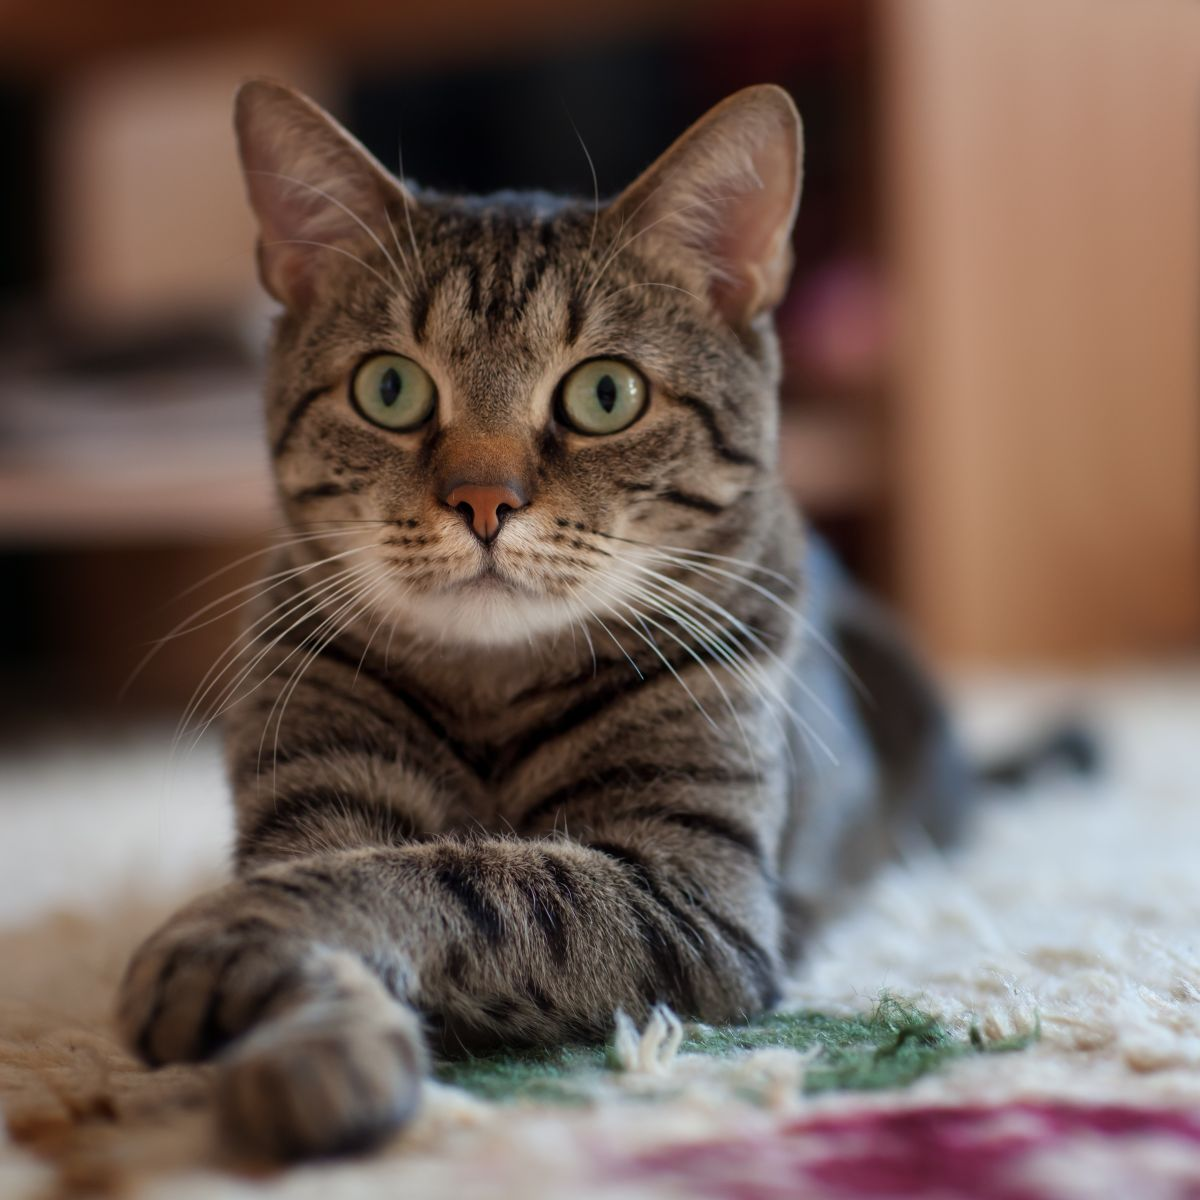 there are an estimated 200 million pet cats worldwide, with more pet cats than pet dogs. Cats live in about 38 per cent of Canadian households, 25.4 per cent of American households and 25 per cent of European households. Cats also seem to be a great source of entertainment. There are